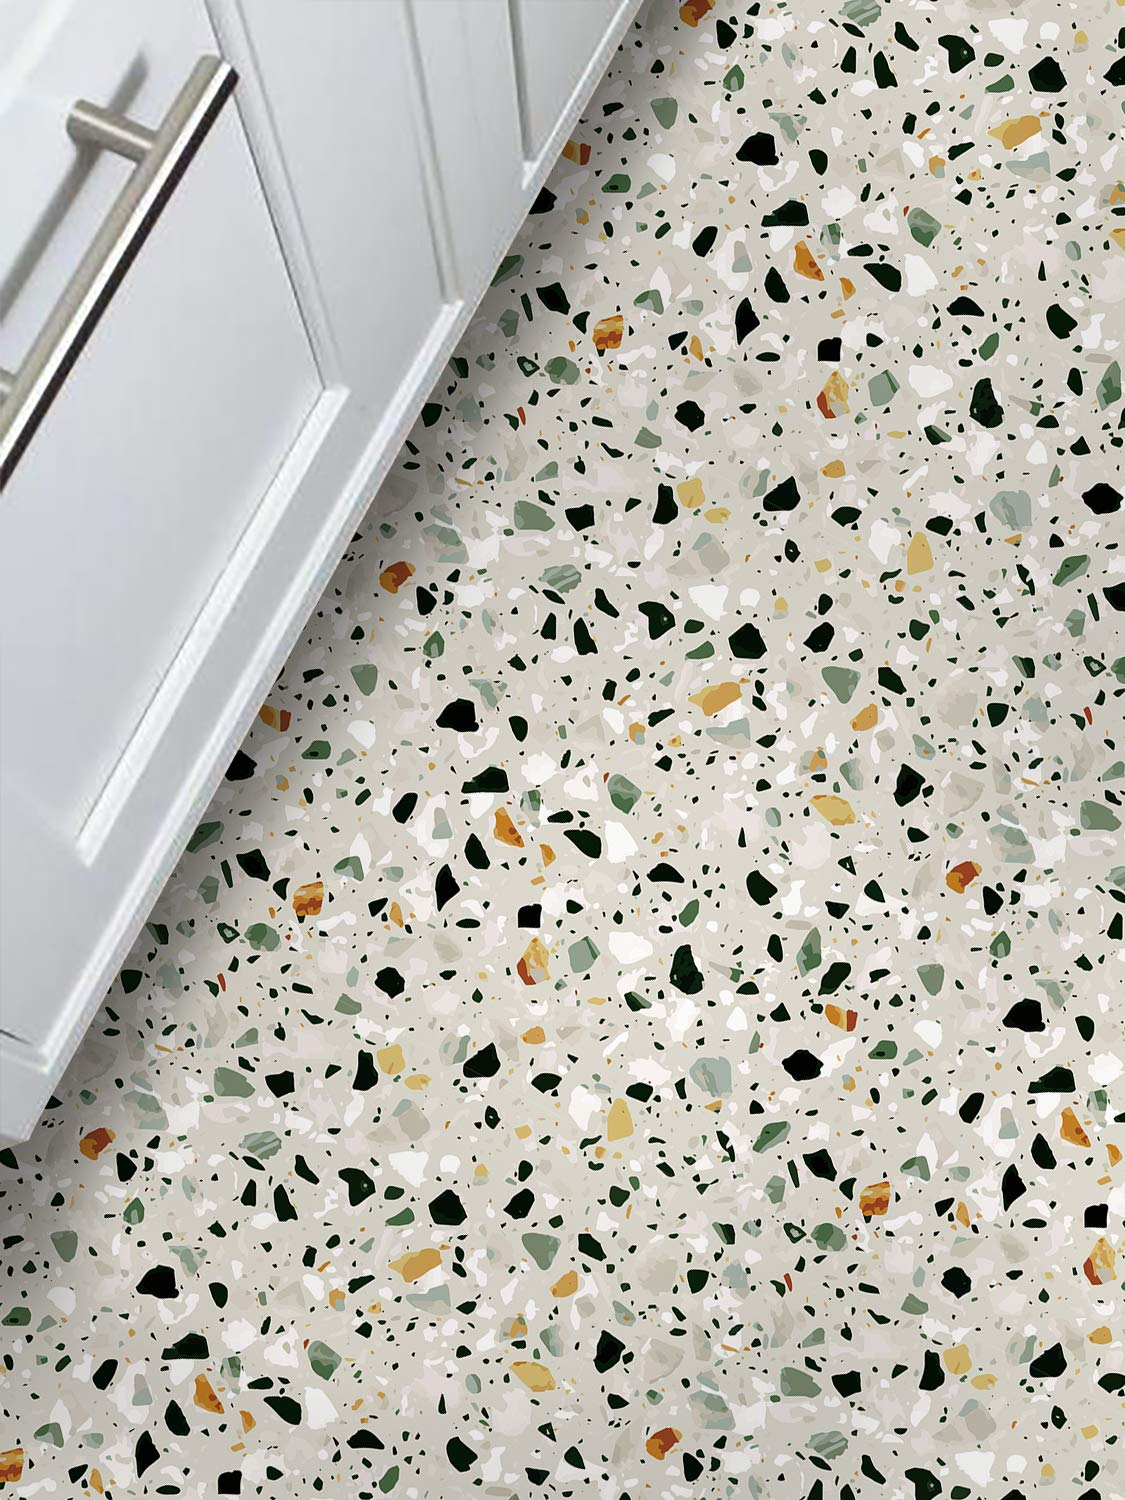 Amazon Com Amazing Wall Self Adhesive Terrazzo Floor